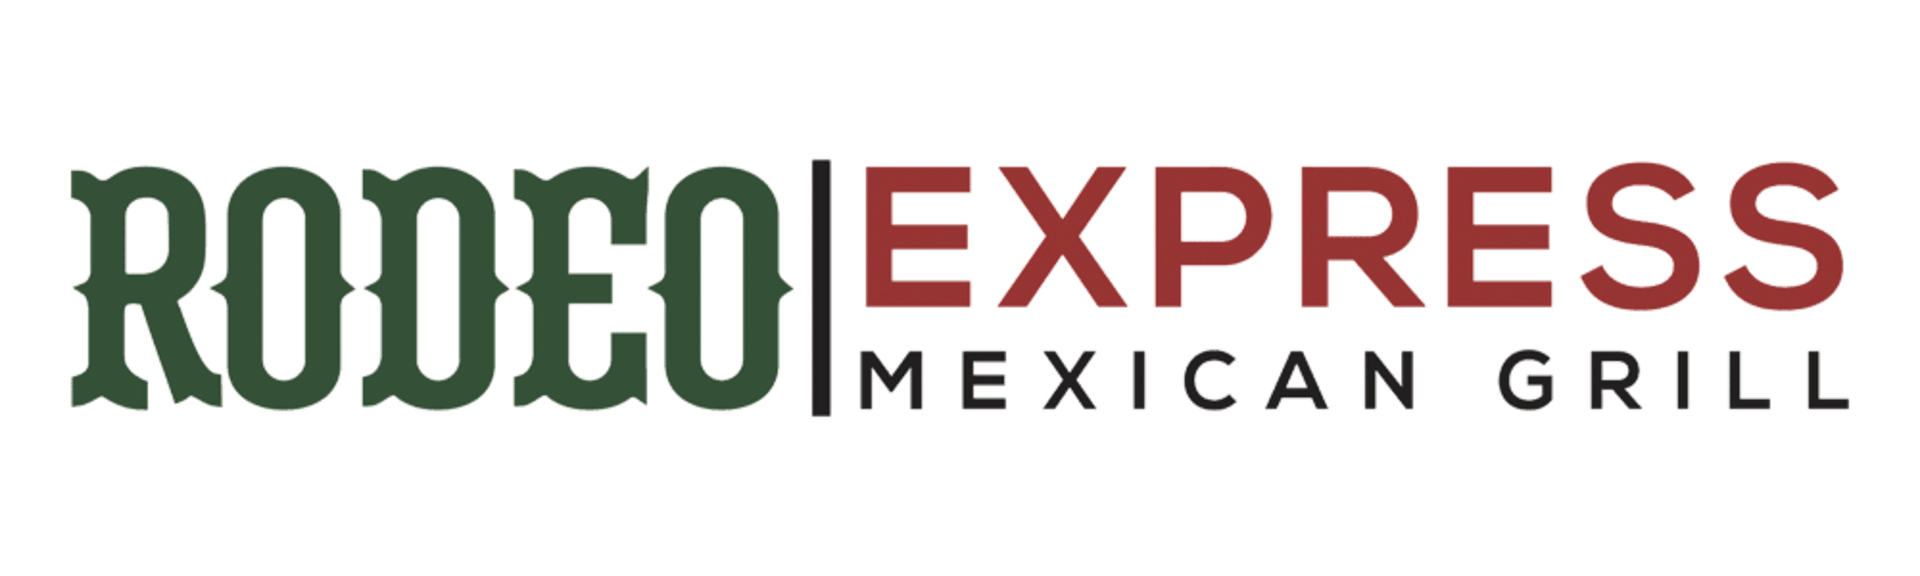 Rodeo Express Rodeo Mexican Grill